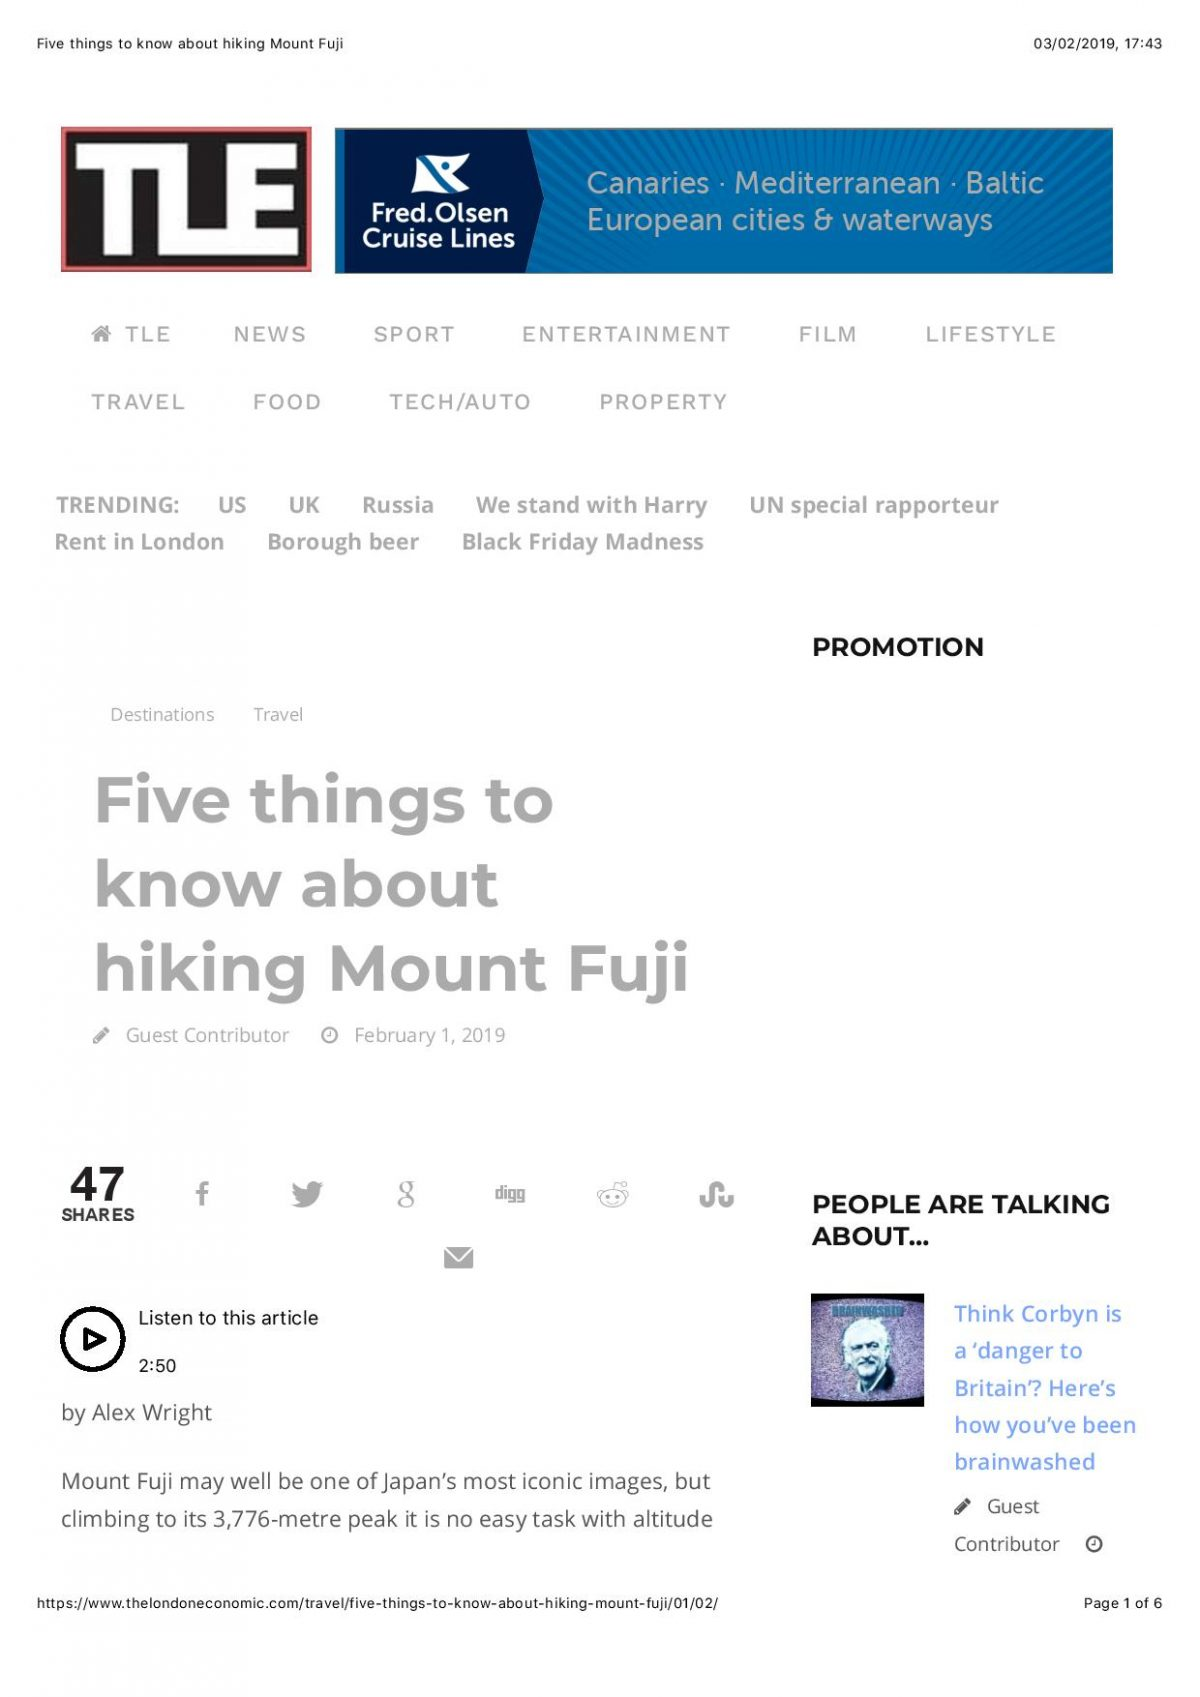 five-things-to-know-about-hiking-mount-fuji-page-001